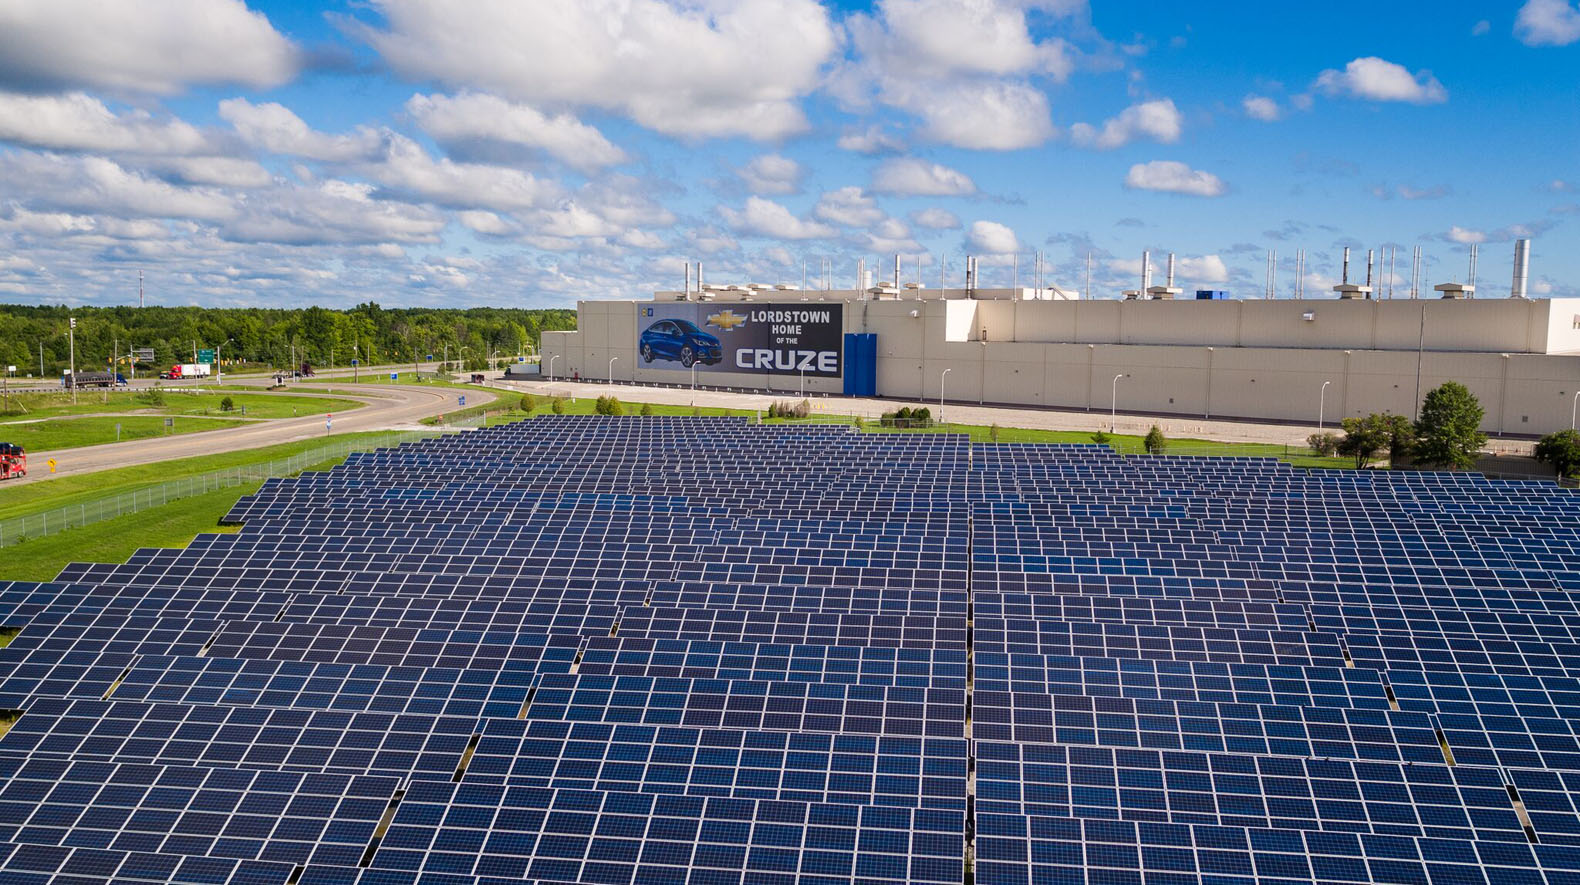 General Motors announces plans to switch to 100% renewable energy